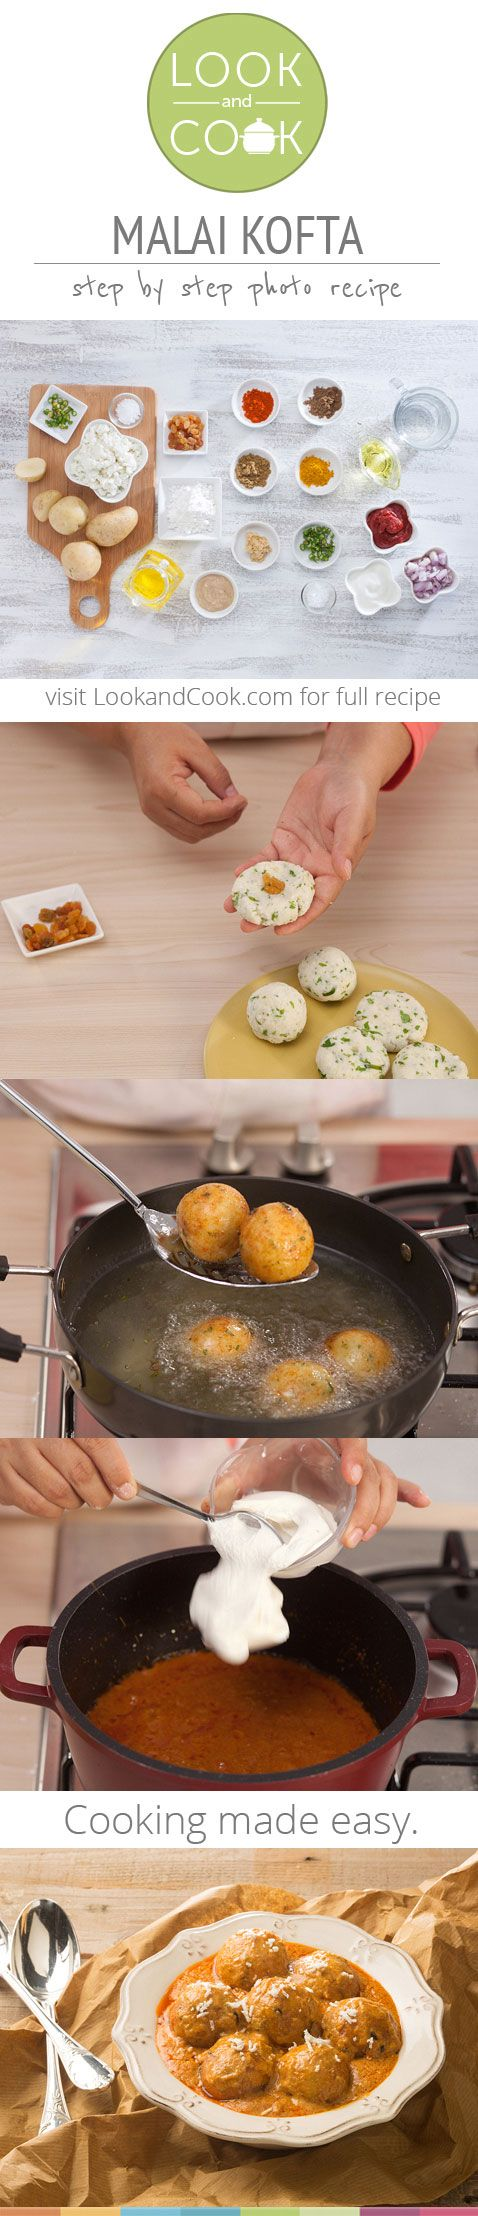 MALAI KOFTA RECIPE Malai Kofta(#LC14053): Malai Koftas are scrumptious vegetable dumplings deep-fried and simmered in a rich creamy gravy, bursting with the flavour of traditonal spices.